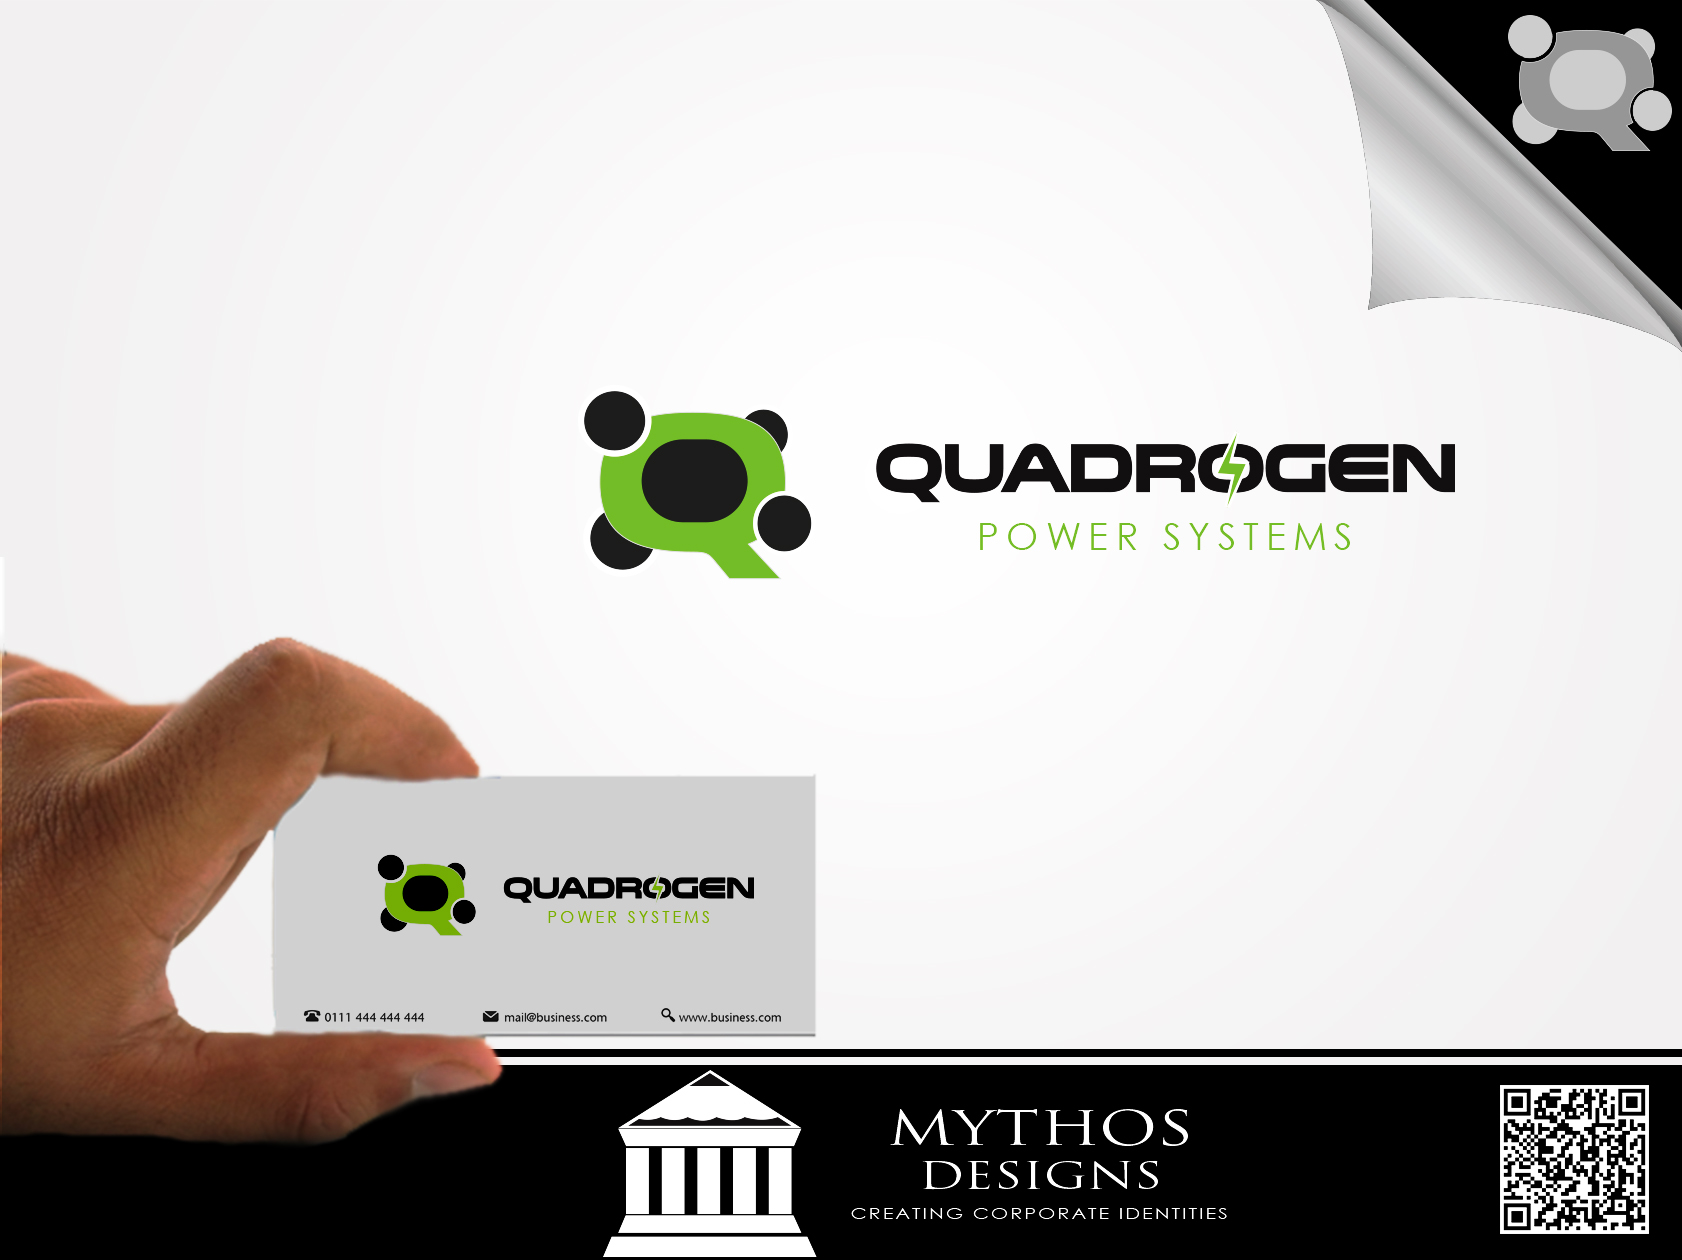 Logo Design by Mythos Designs - Entry No. 127 in the Logo Design Contest New Logo Design for Quadrogen Power Systems, Inc.